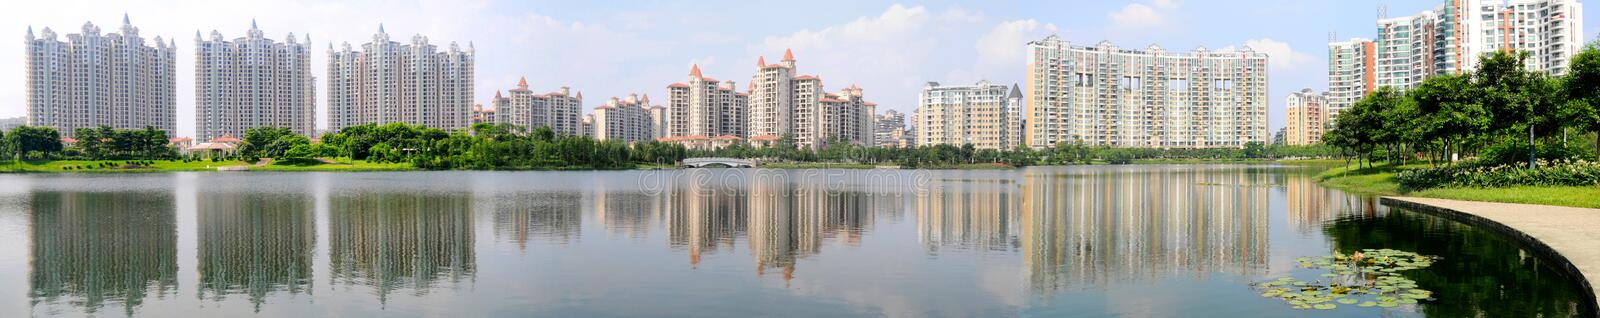 The luxury residential area. A luxury residential area by the city park in Foshan,Guangdong,China stock photography